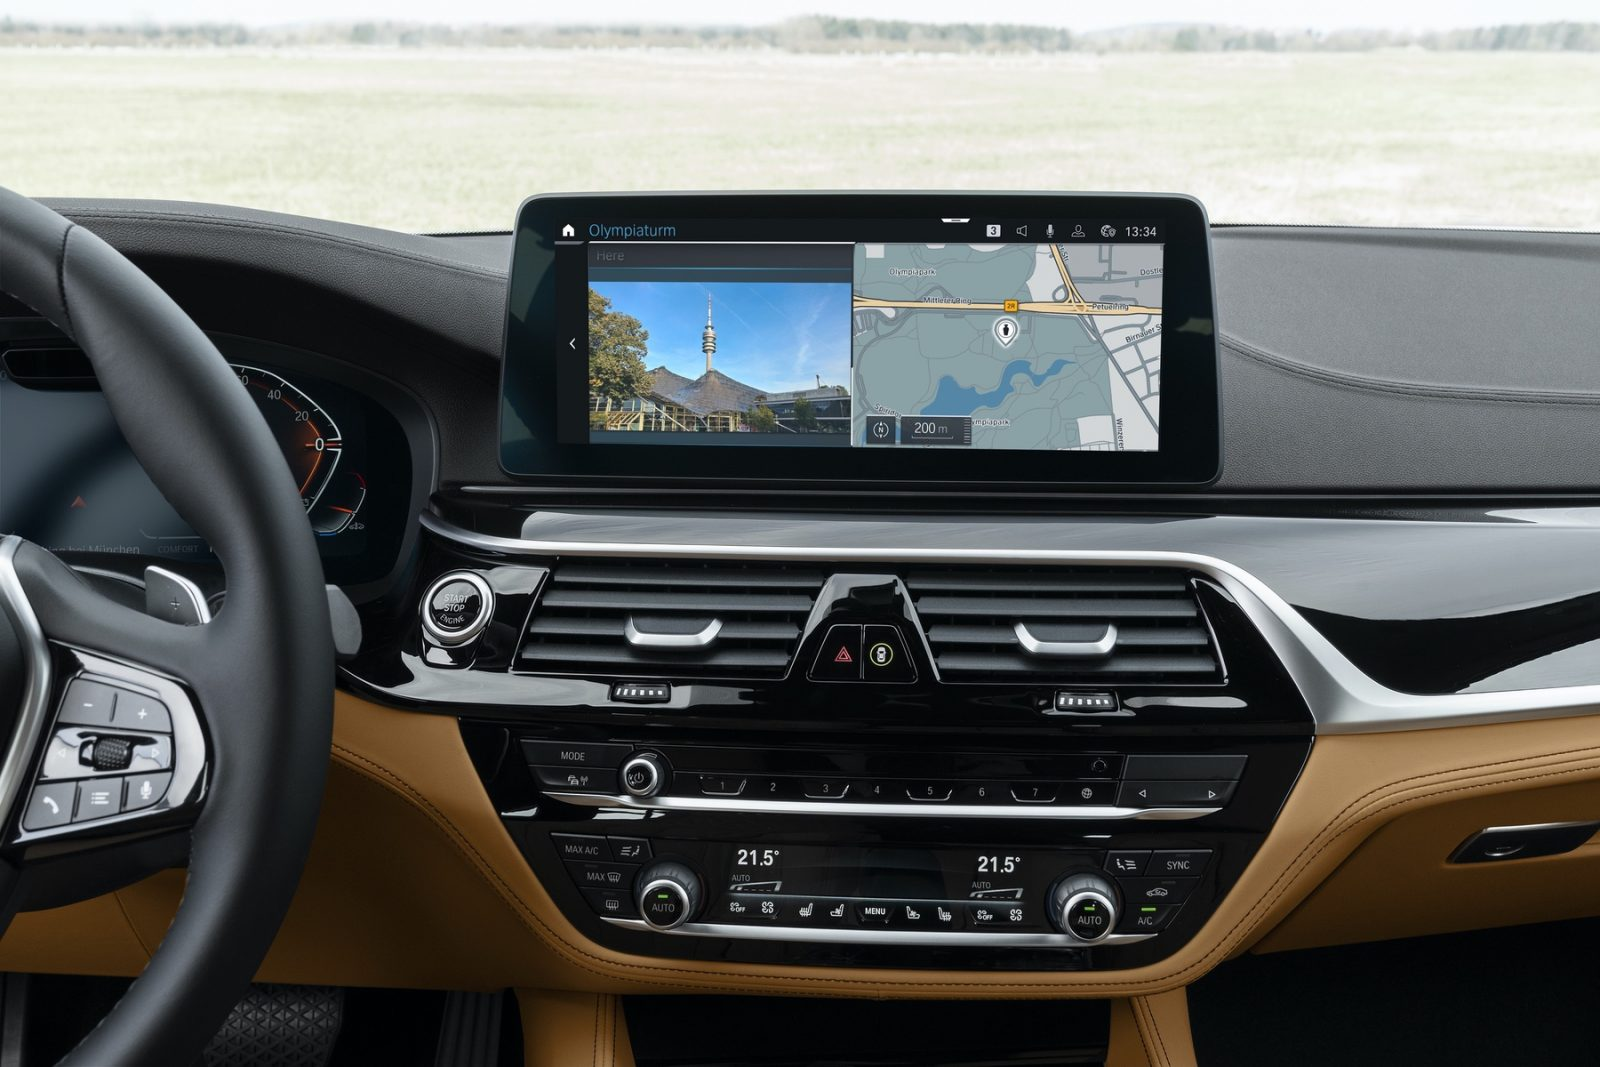 Bmw Software Update To Including Android Auto New Maps And Digital Key Bimmerfile